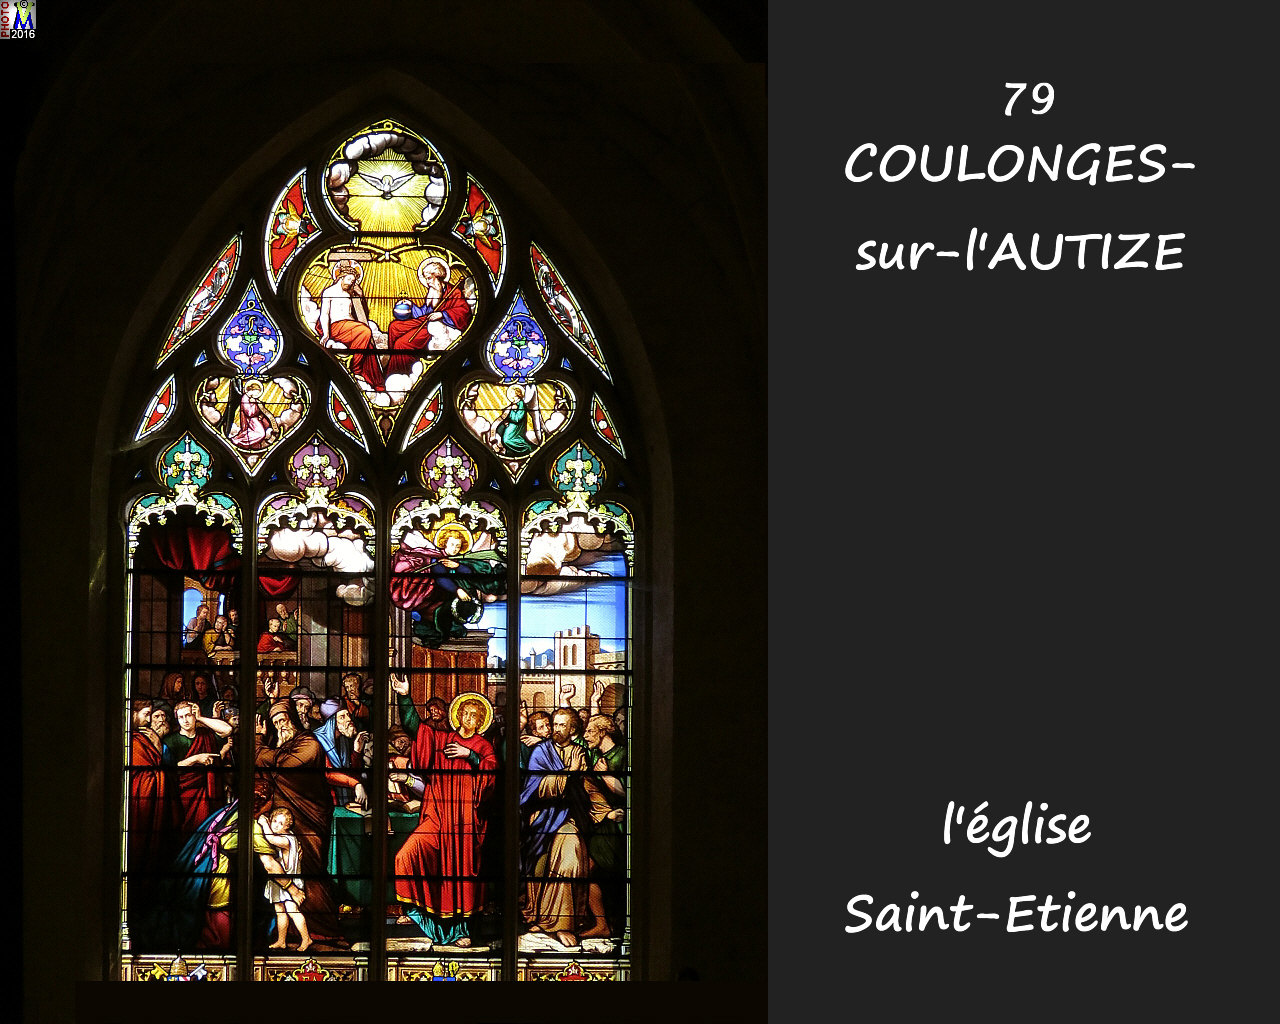 79COULONGES-AUTIZE_eglise_1220.jpg